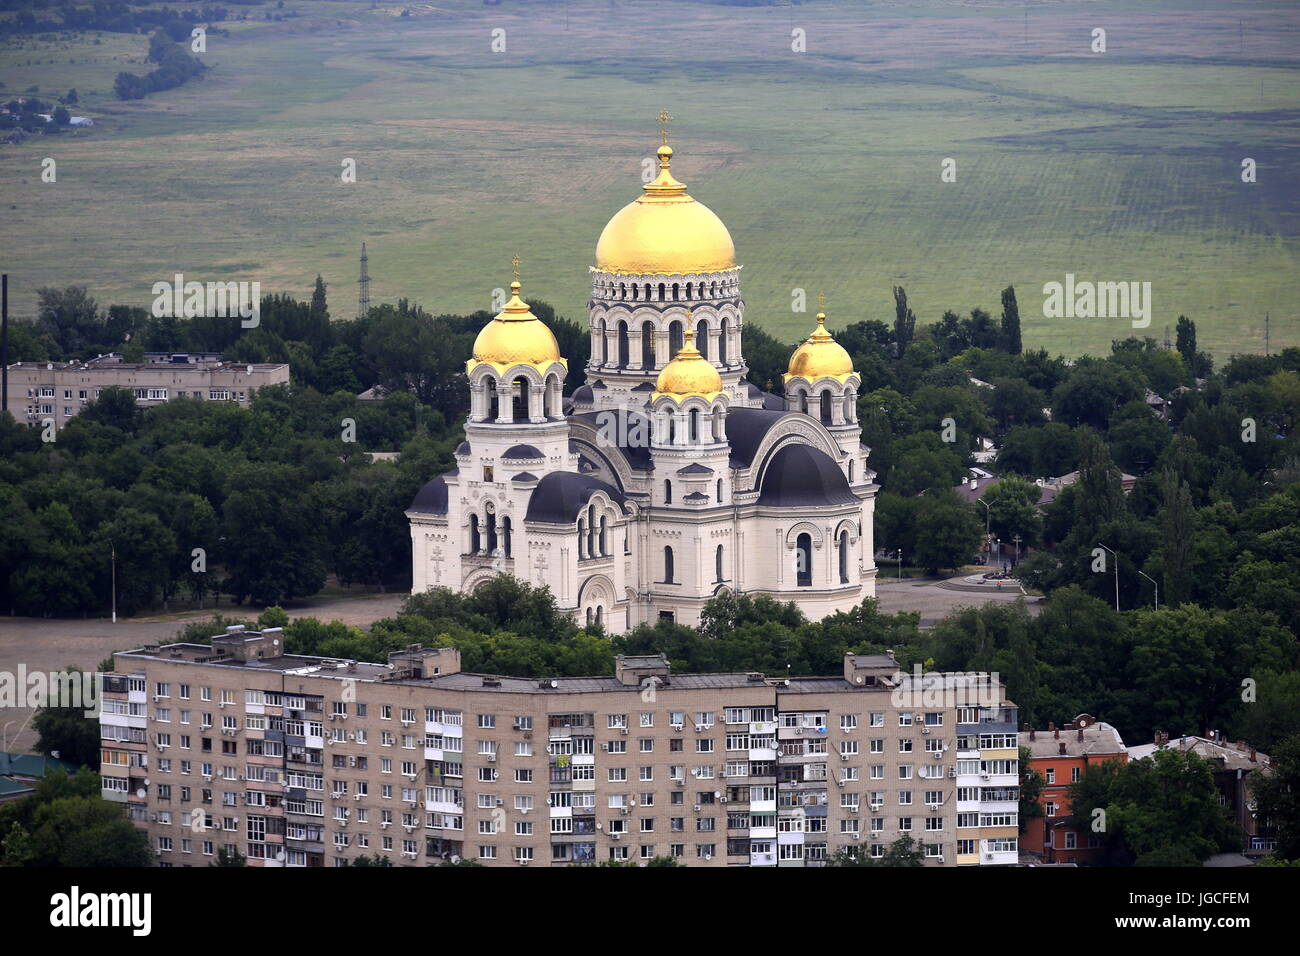 Novocherkassk, Russia. 14th June, 2017. A view of the Ascension Cathedral. Credit: Valery Matytsin/TASS/Alamy Live - Stock Image